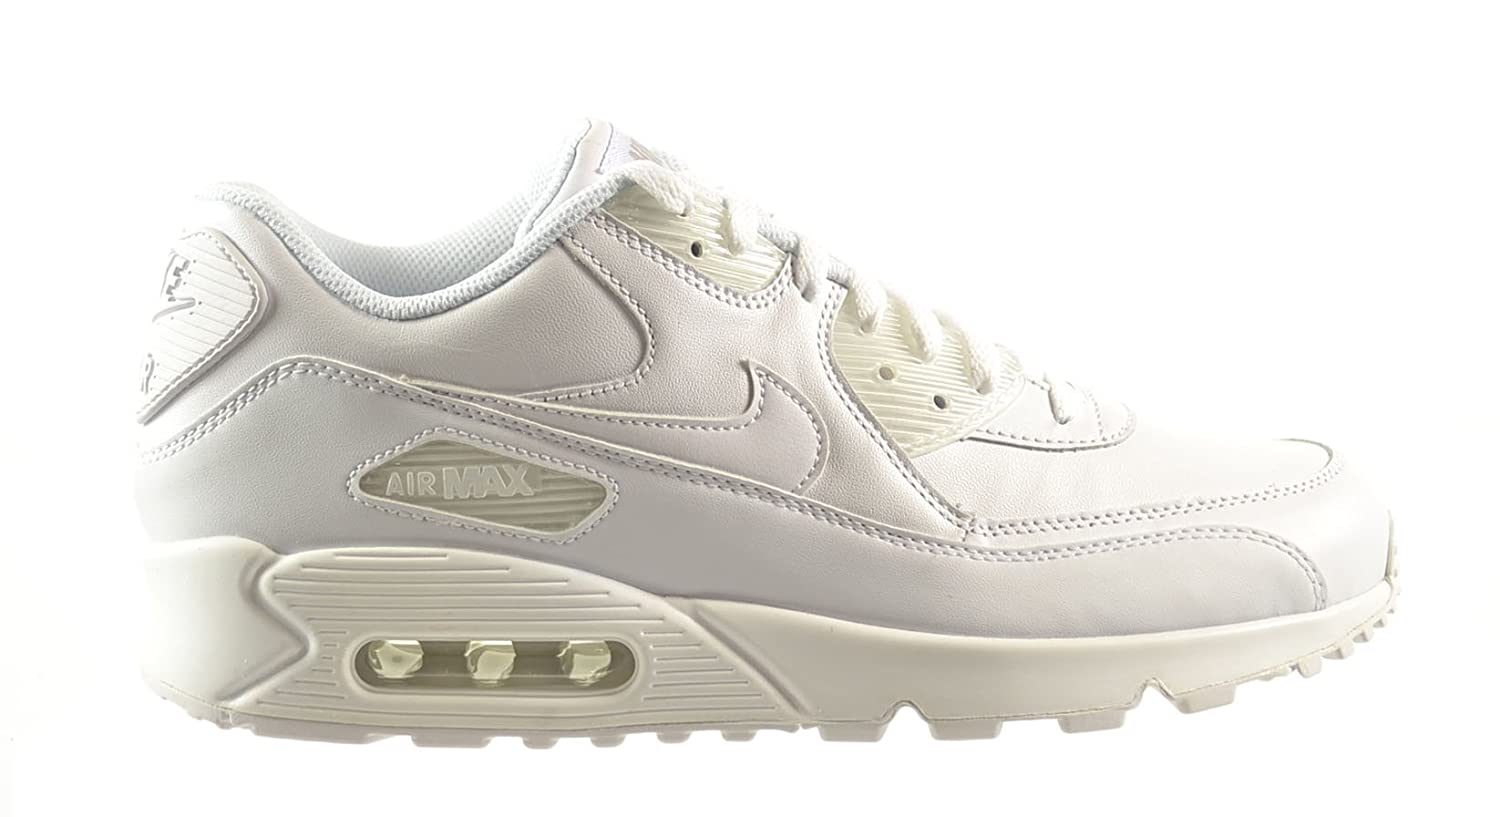 half off 9a014 18703 Amazon.com   Nike Air Max 90 Leather Men s Shoes White White 302519-113    Fashion Sneakers